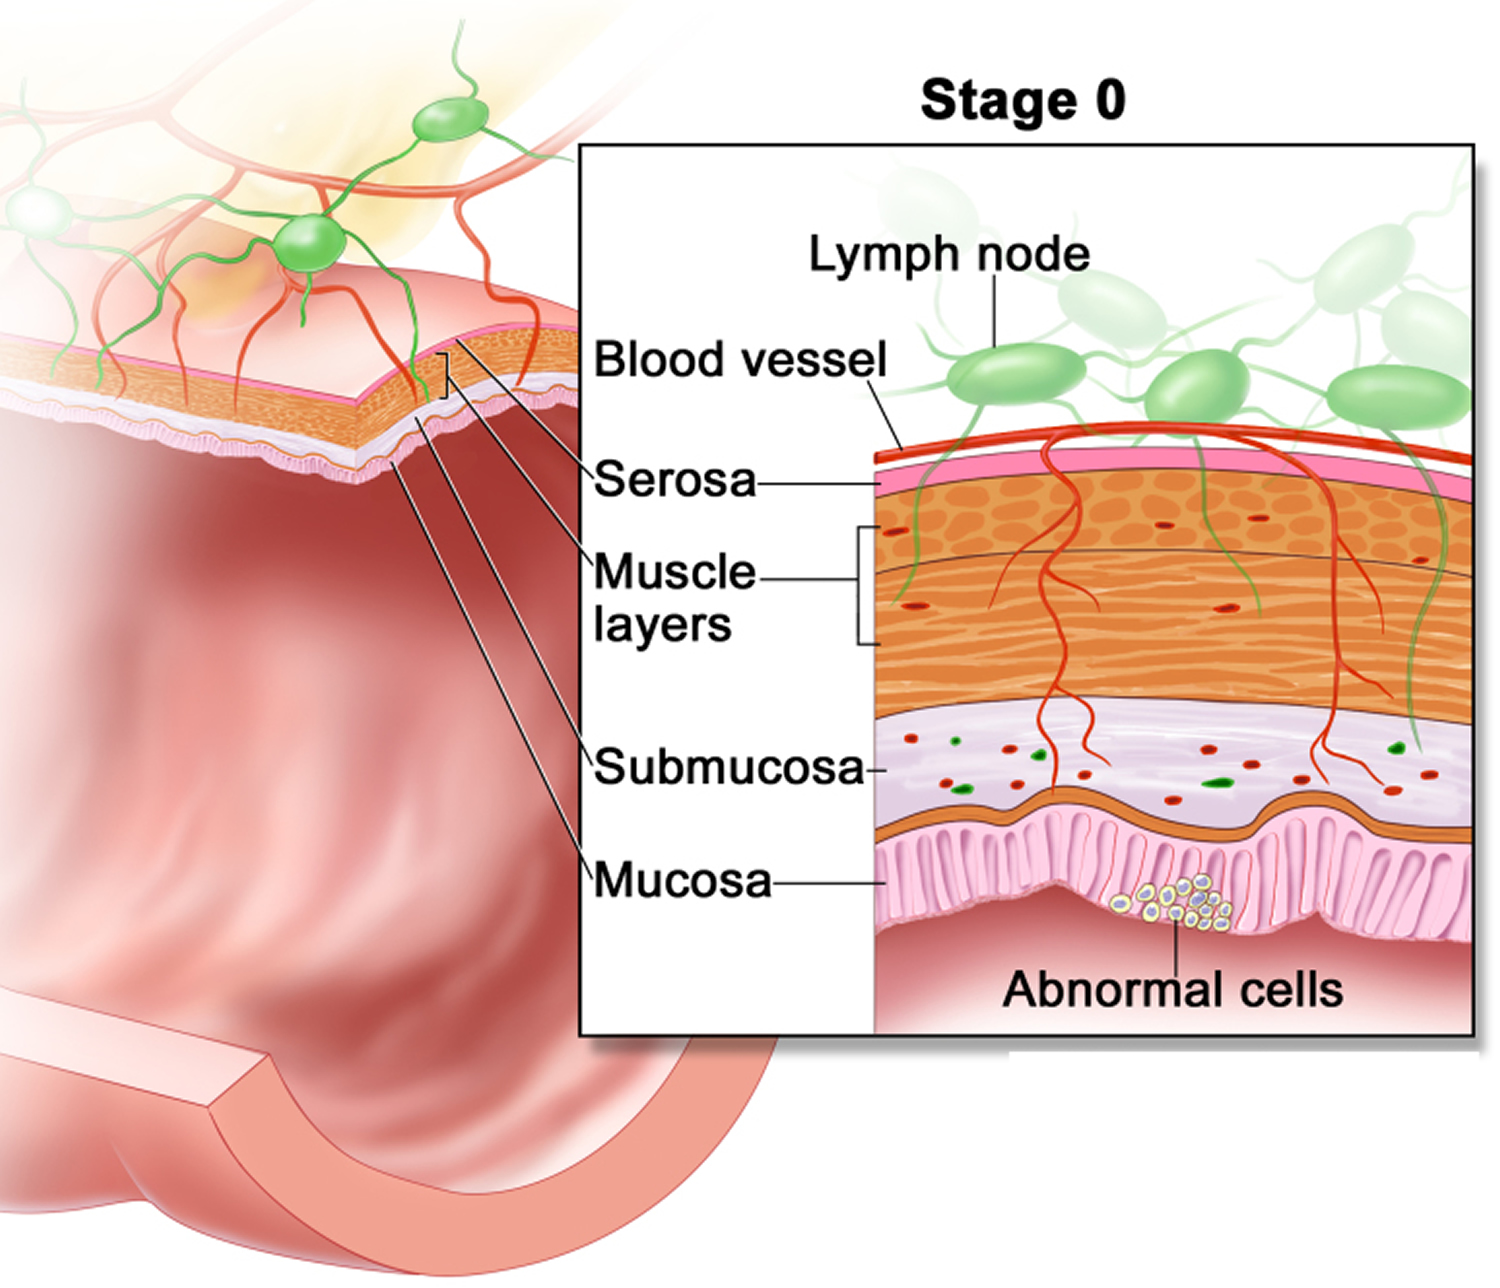 colon cancer -stage 0 Carcinoma in Situ